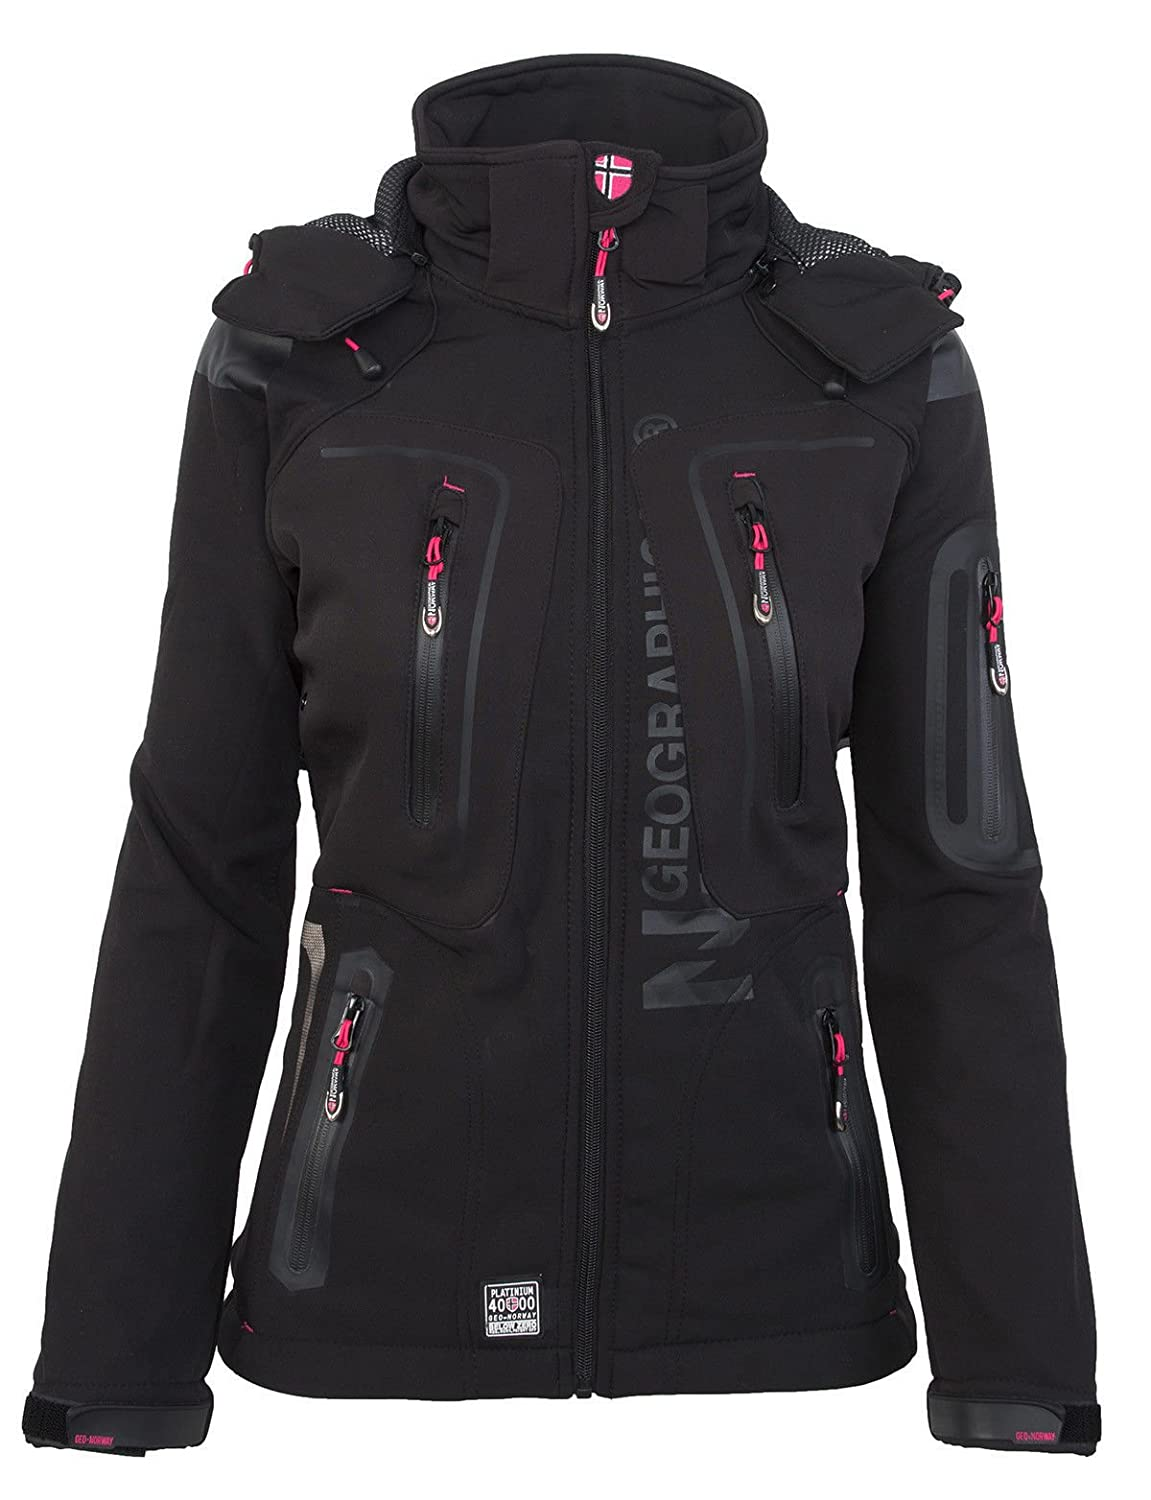 Geographical Norway - Chaqueta multifunción softshell impermeable para mujer negro M